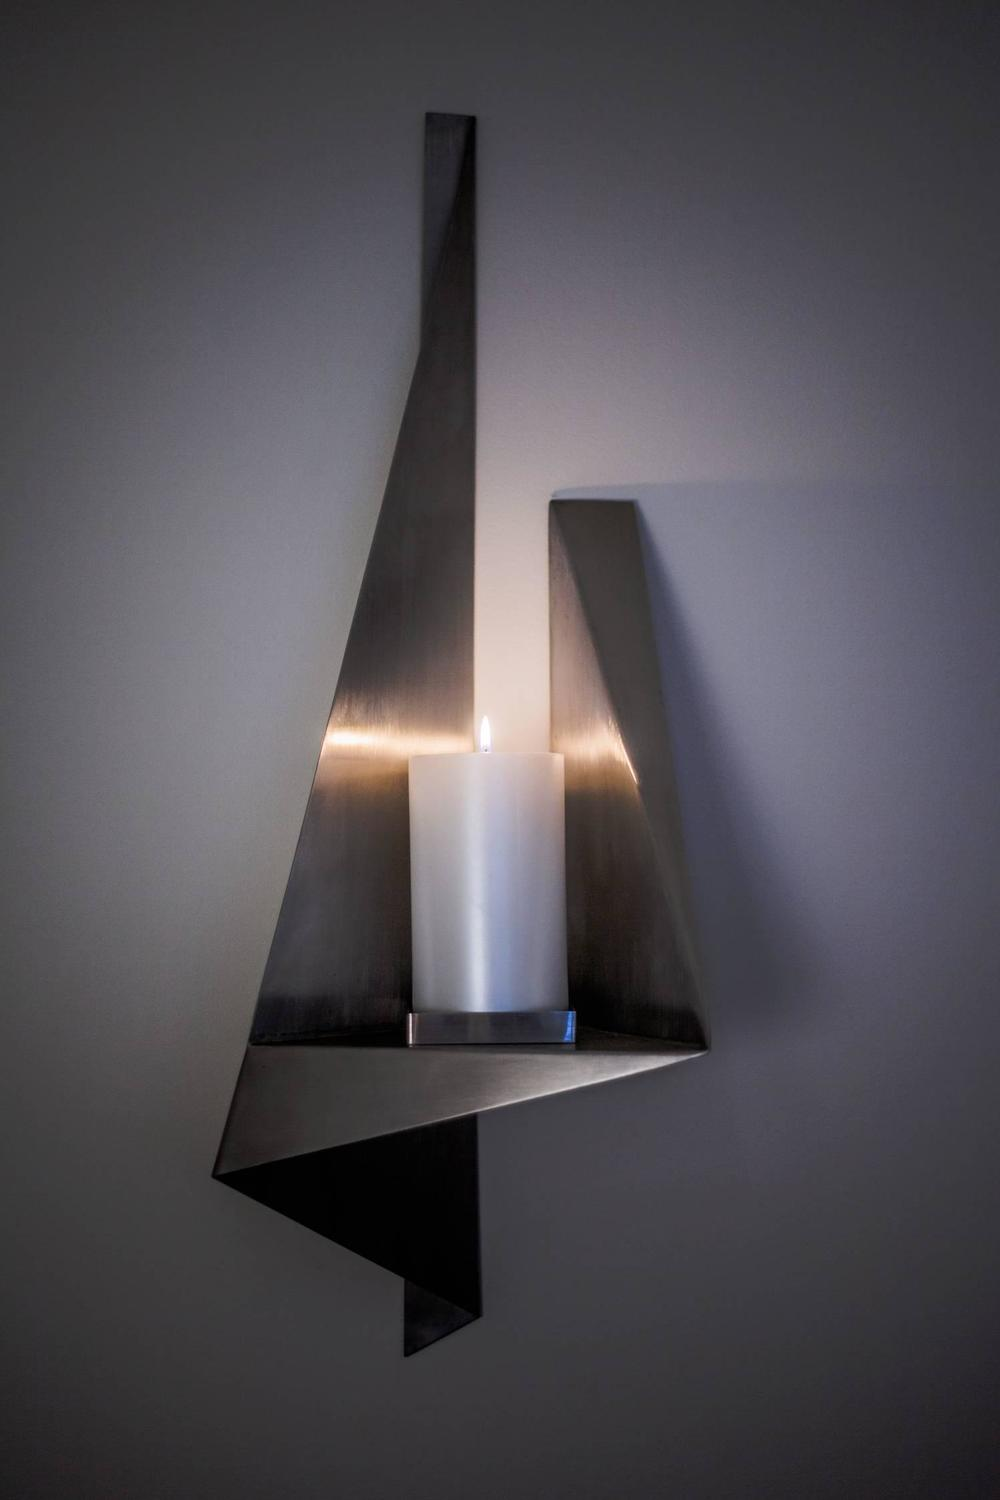 Large Wall Sconces With Candles : Large Candle Wall Sconce, Custom Stainless Steel, USA, 1970s For Sale at 1stdibs